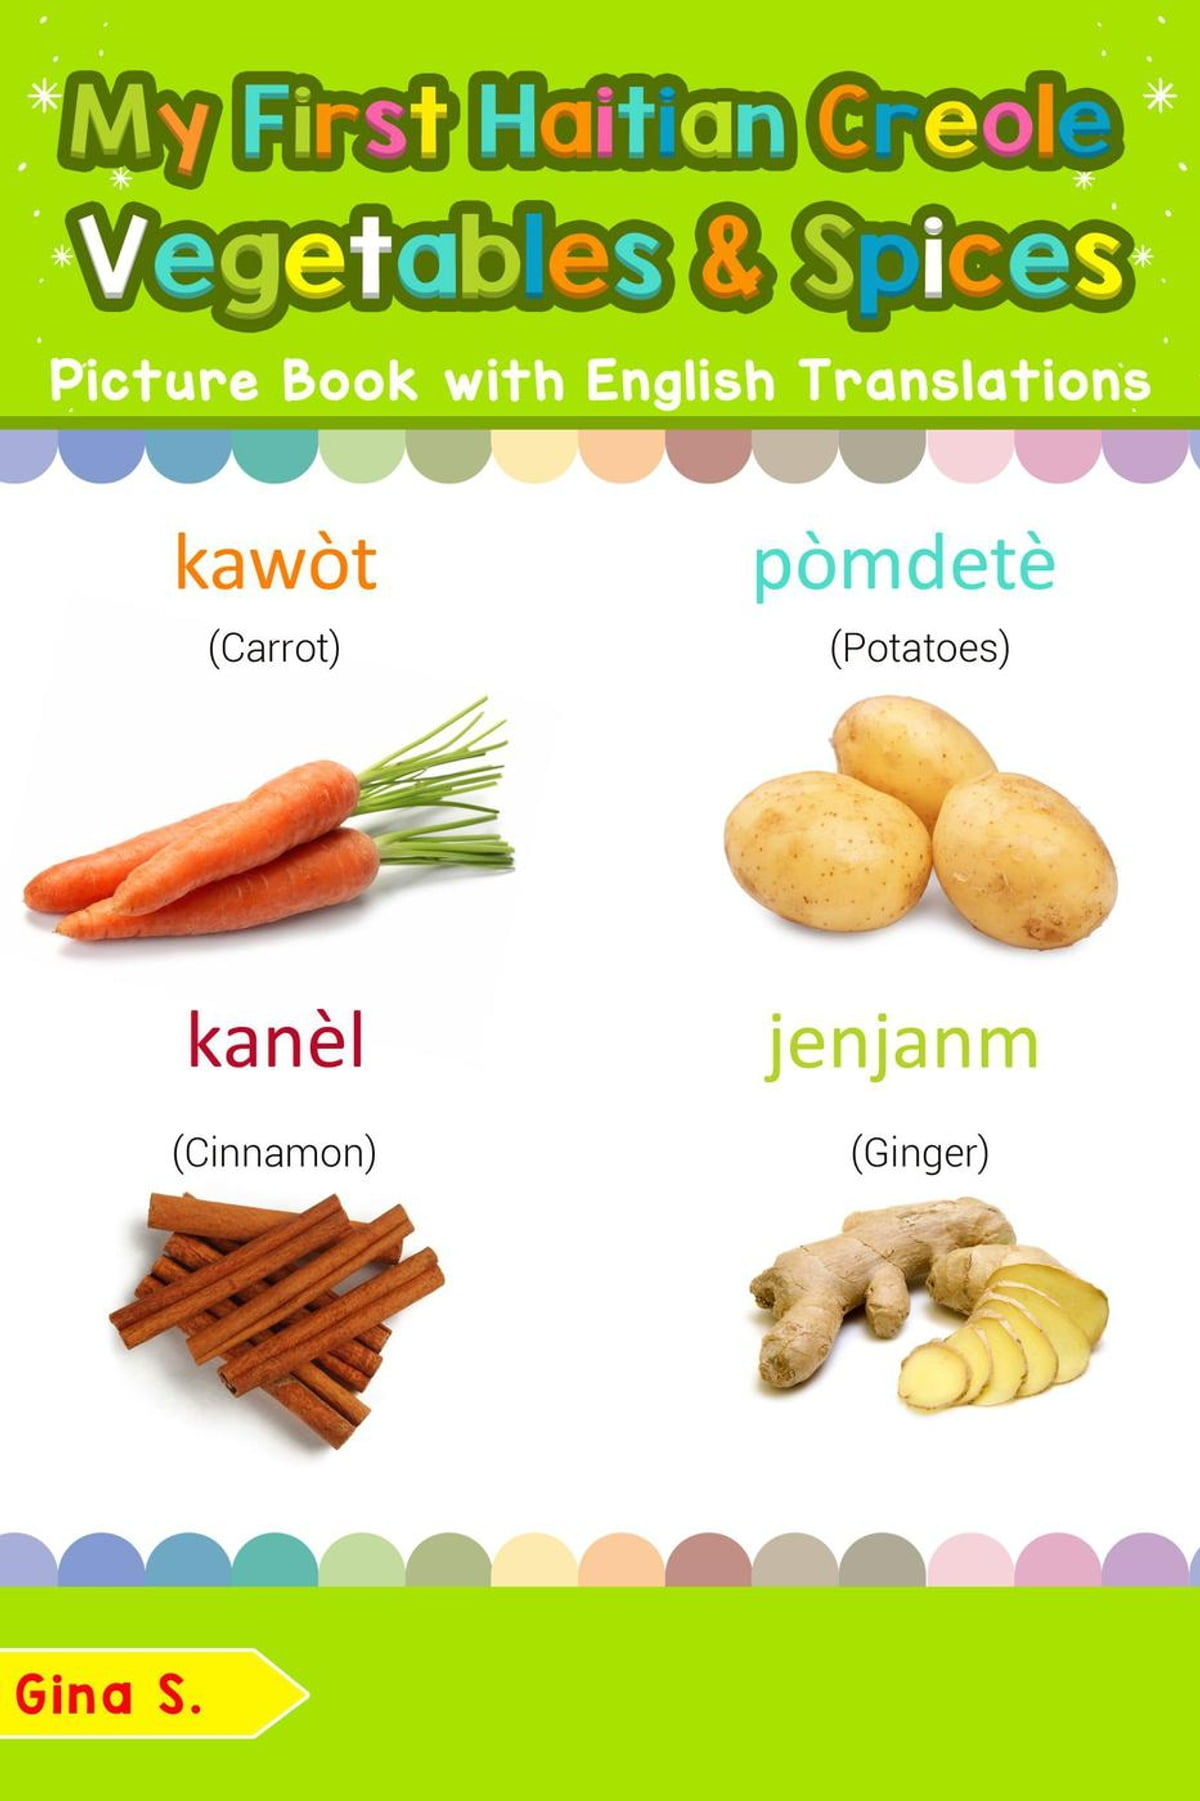 Haitian First Names : haitian, first, names, First, Haitian, Creole, Vegetables, Spices, Picture, English, Translations, EBook, 9781724383709, Rakuten, Greece